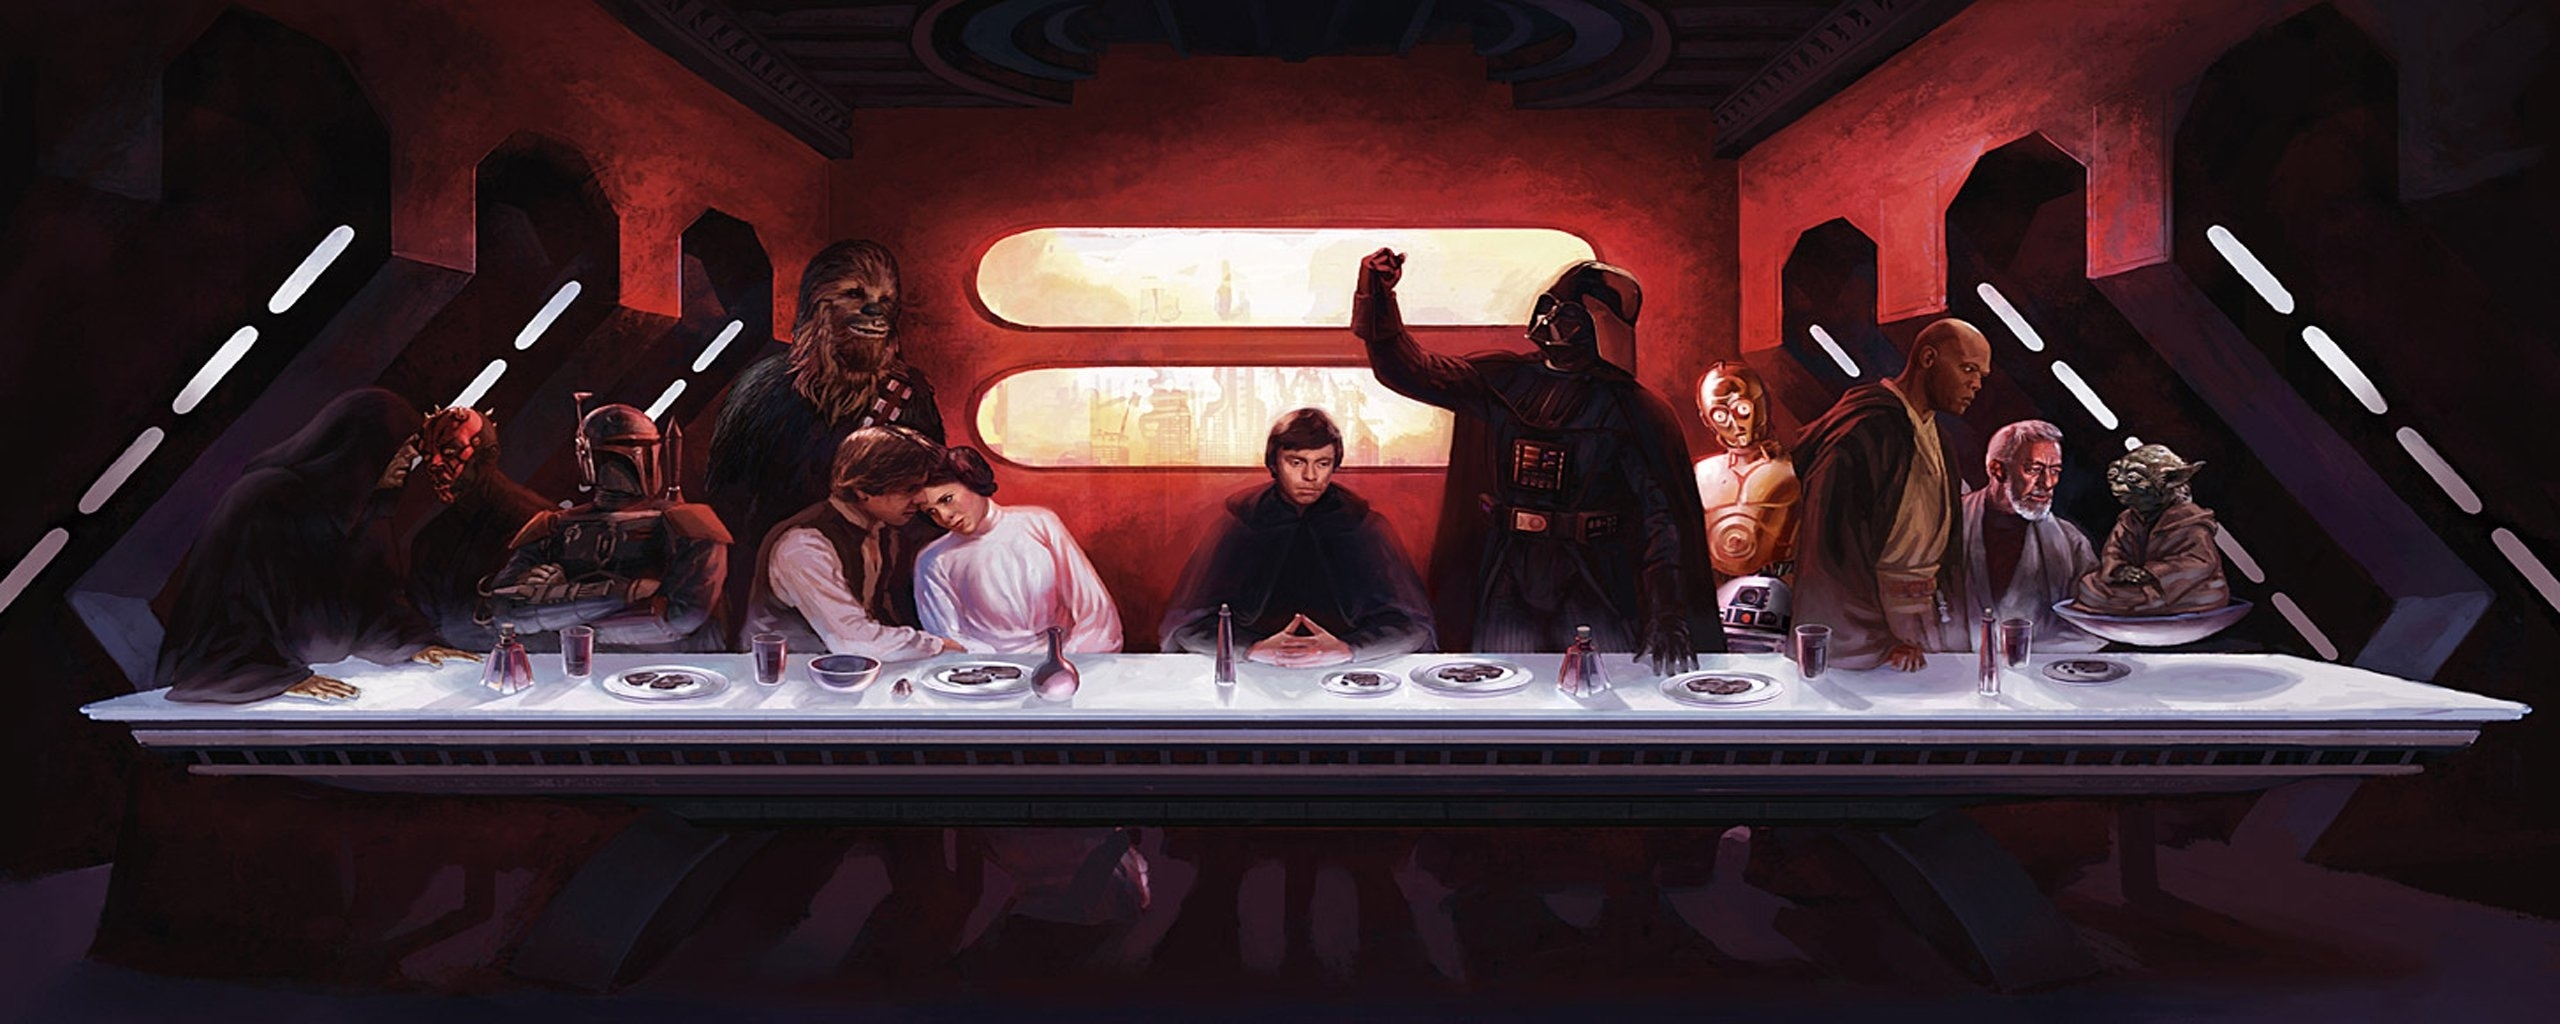 10 Best Star Wars Last Supper Wallpaper FULL HD 1080p For PC Desktop